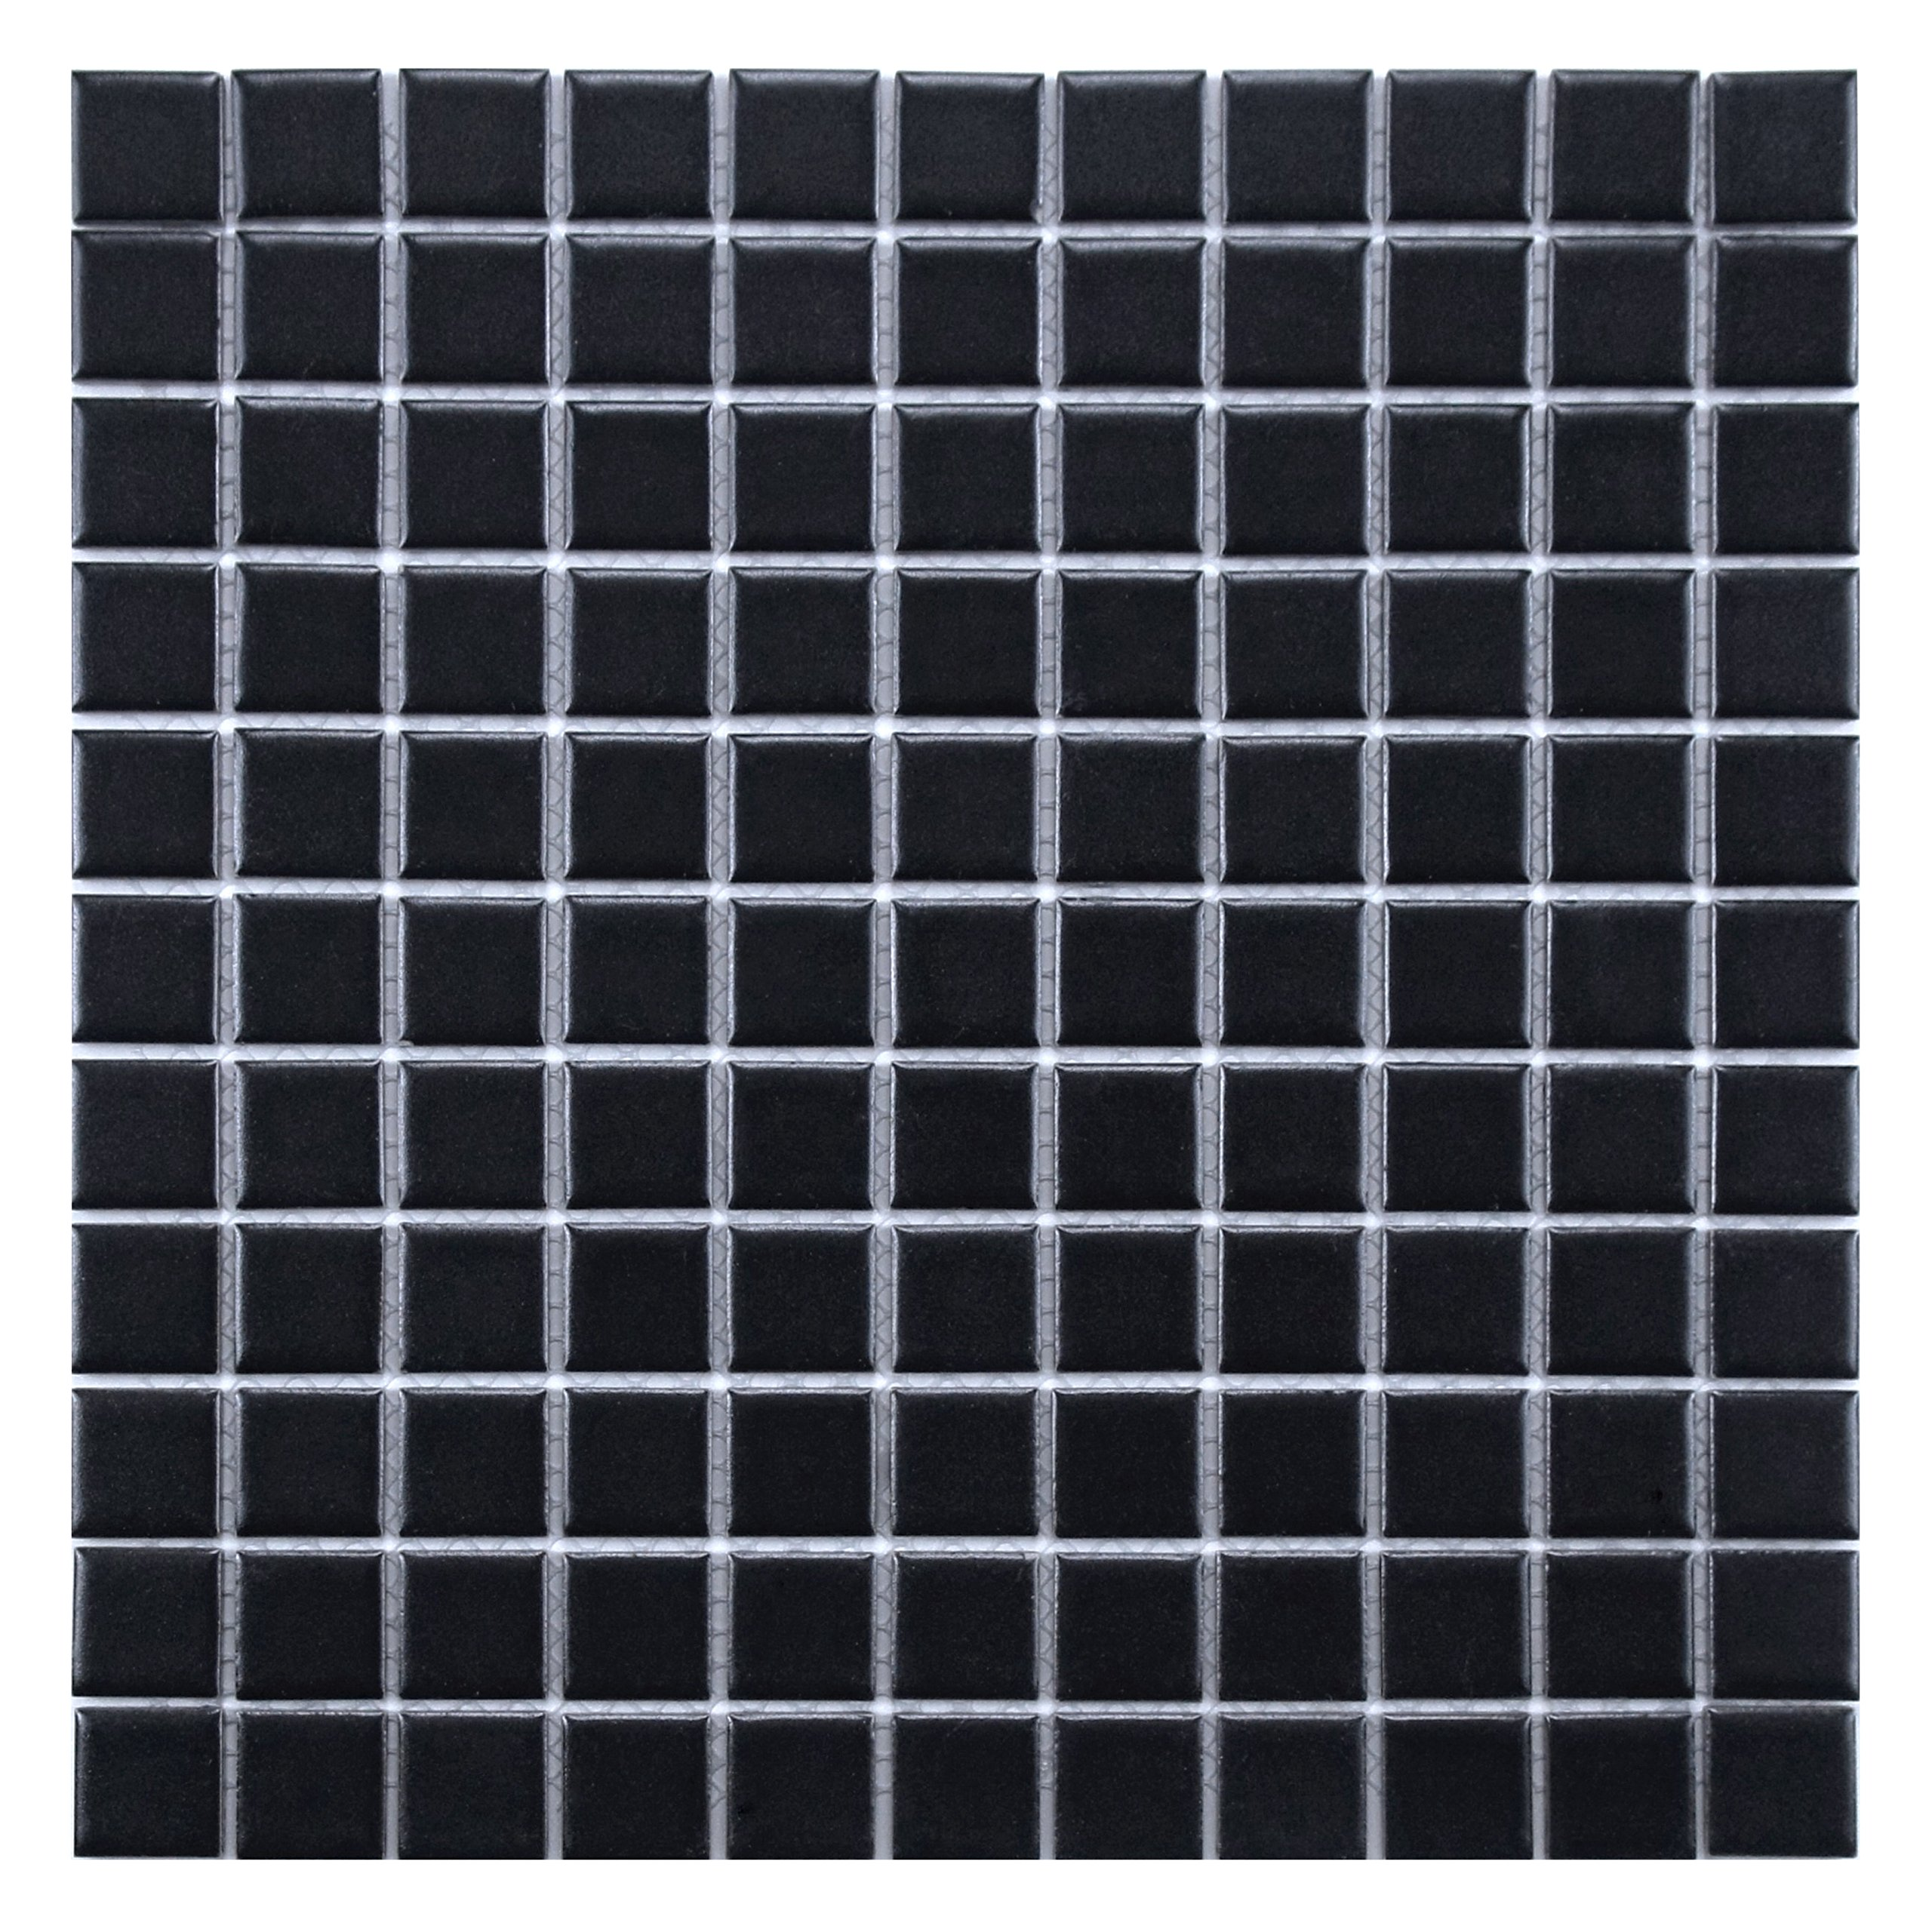 SomerTile FXLMS1BK Retro Square Porcelain Floor and Wall Tile, 11.75'' x 11.75'', Matte Black